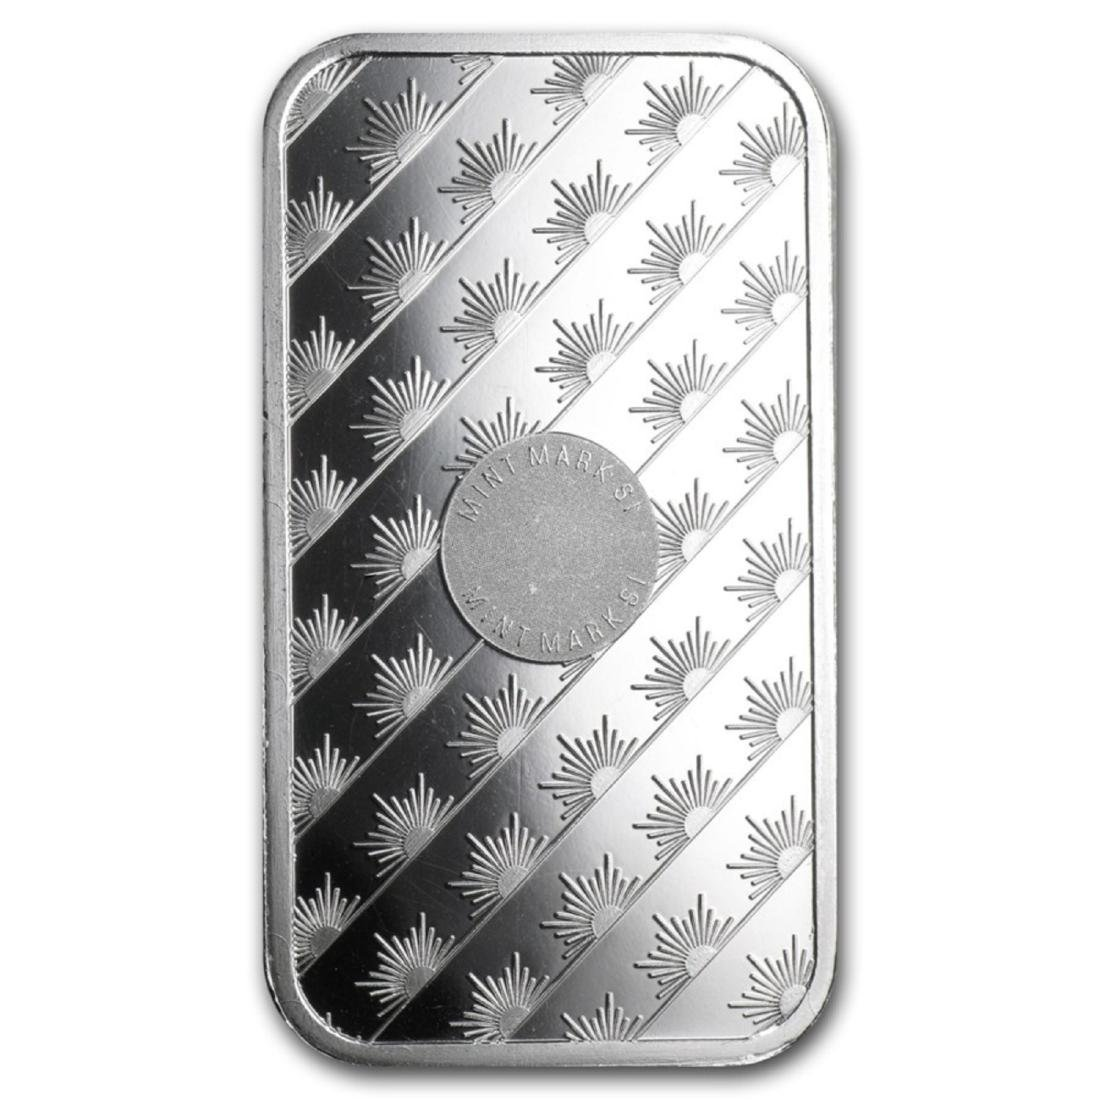 1 oz Silver Sunshine Silver Bar - 2